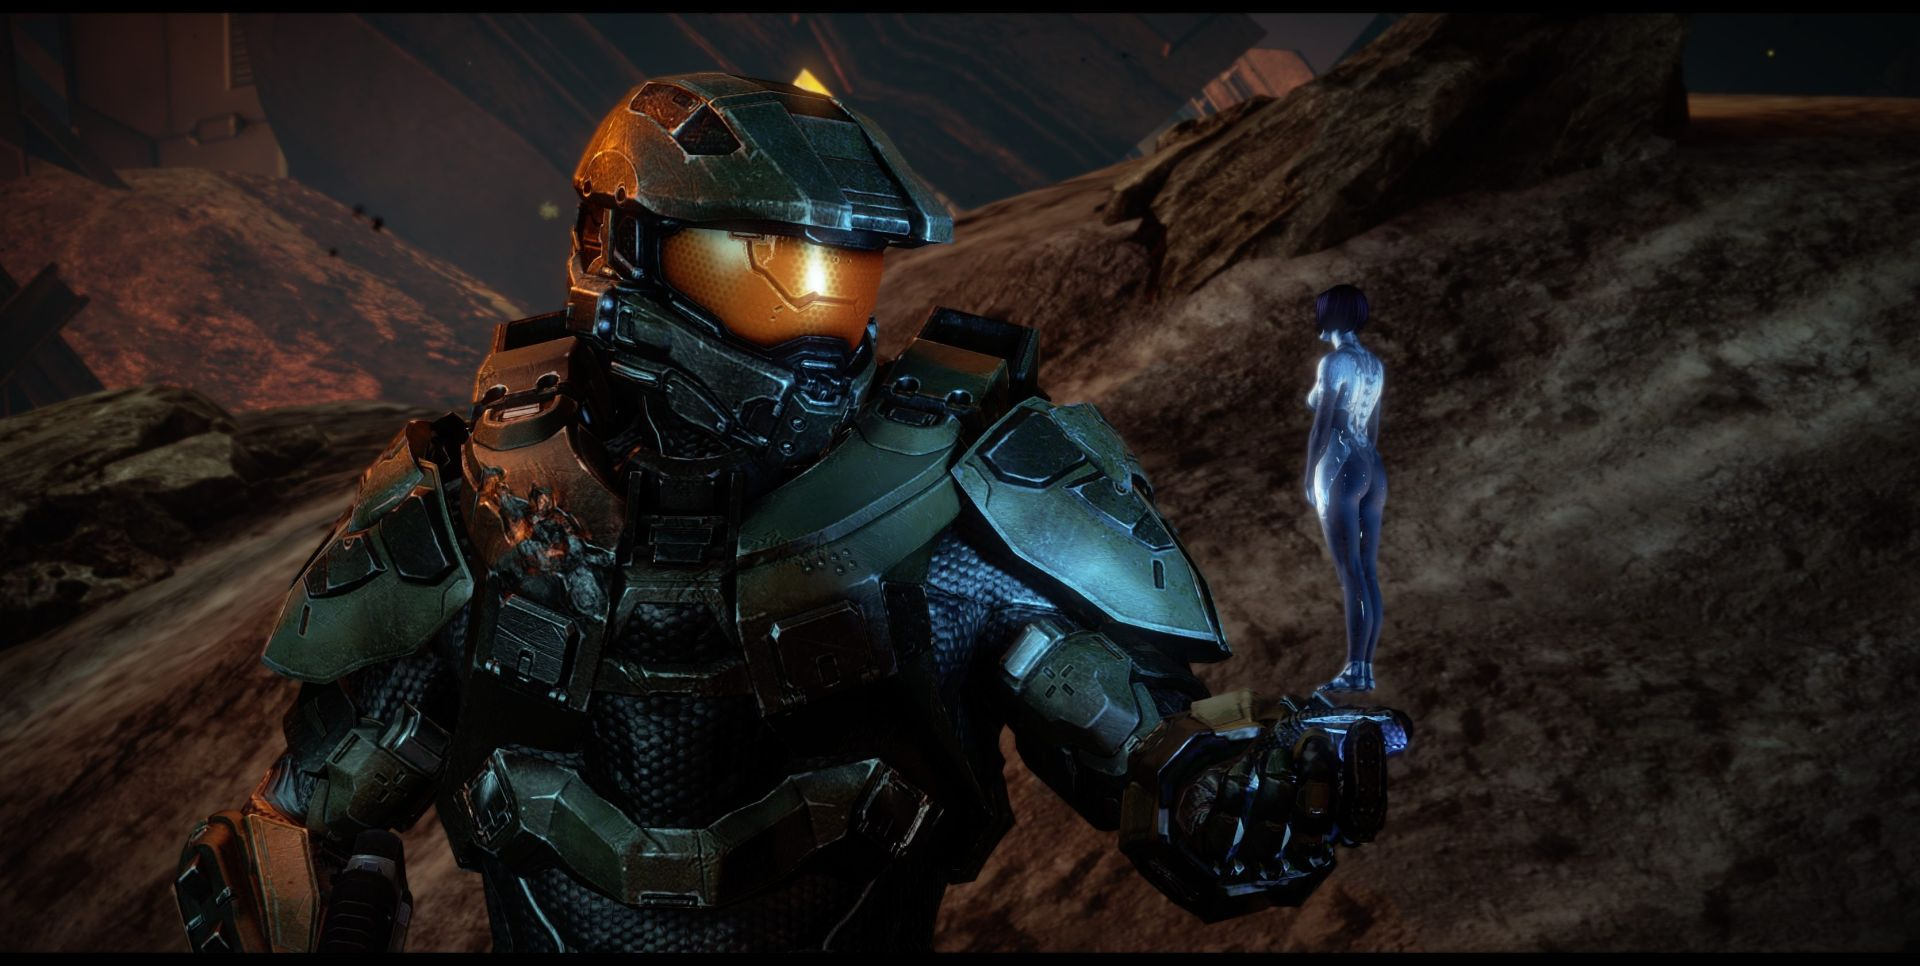 Pc Users Can Finally Play Halo The Master Chief Collection